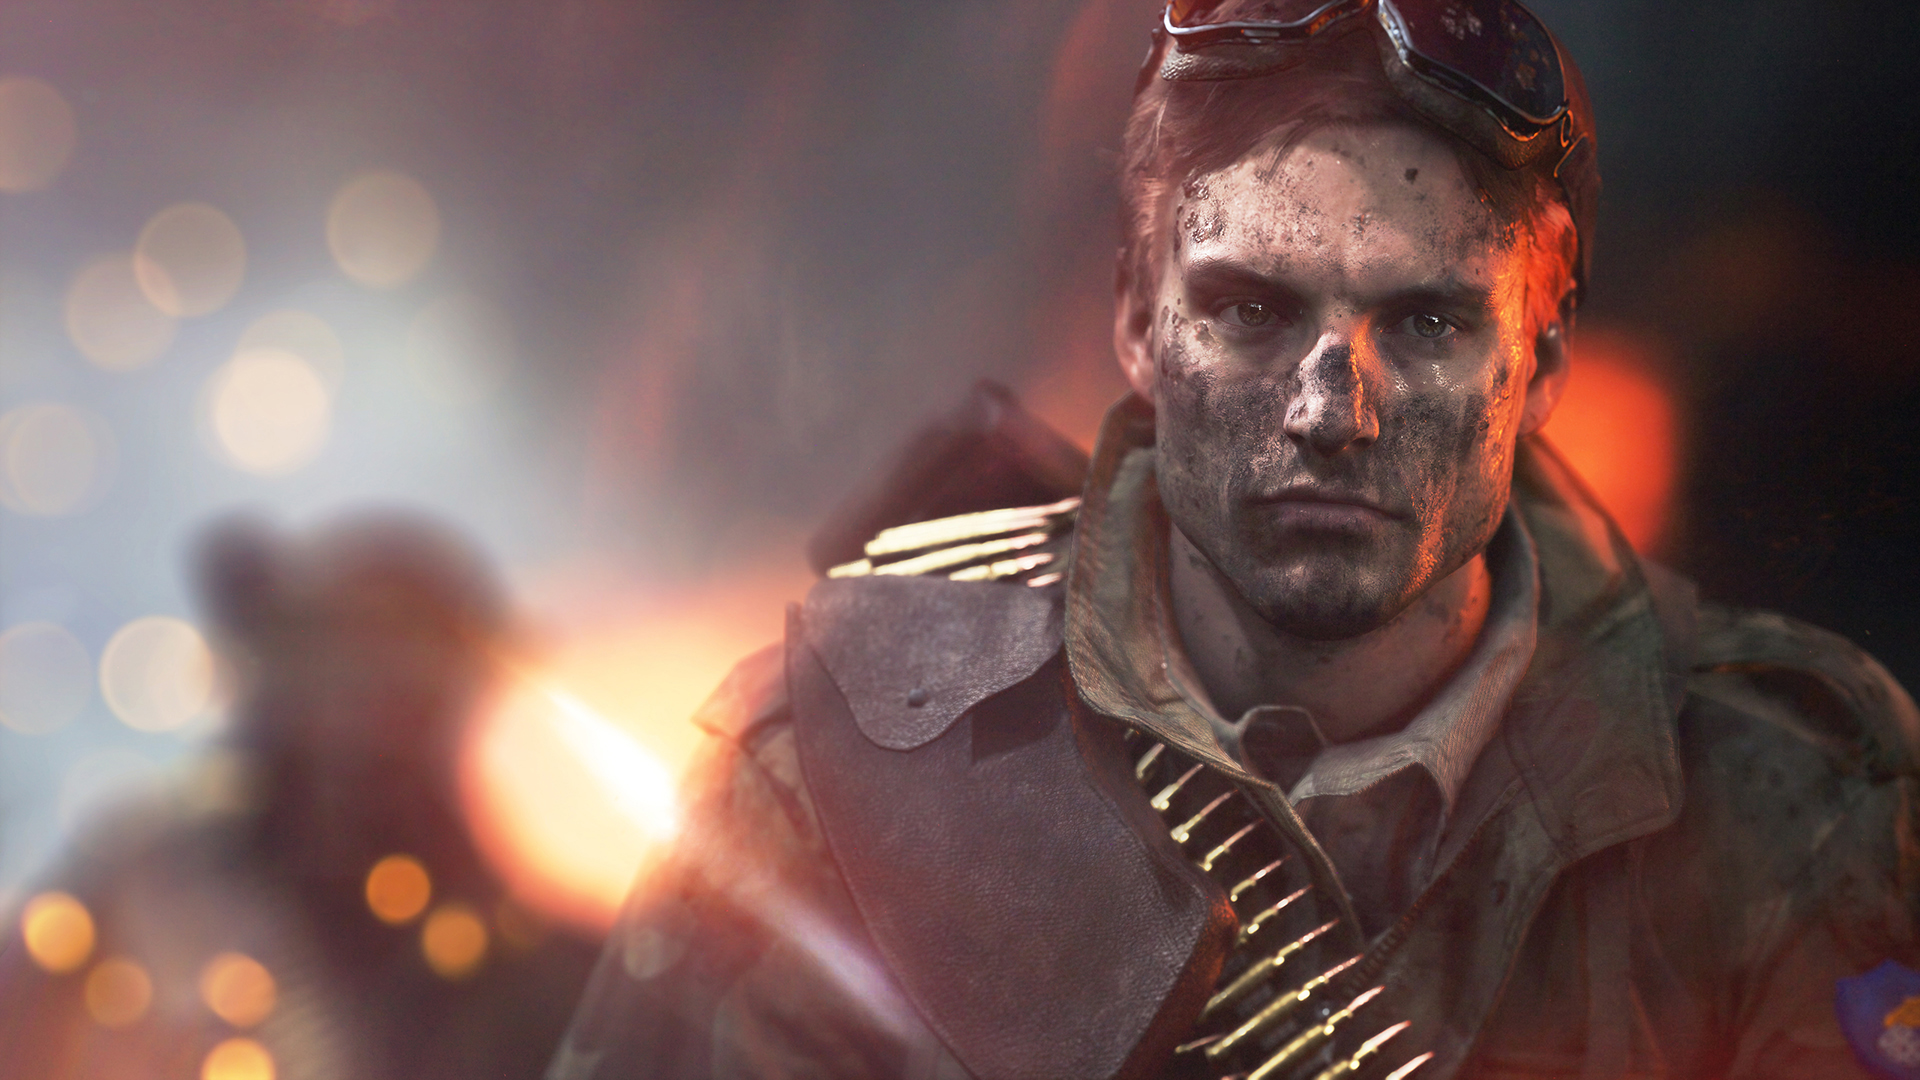 Battlefield 5 improves on Battlefield 1, but it might make you pine